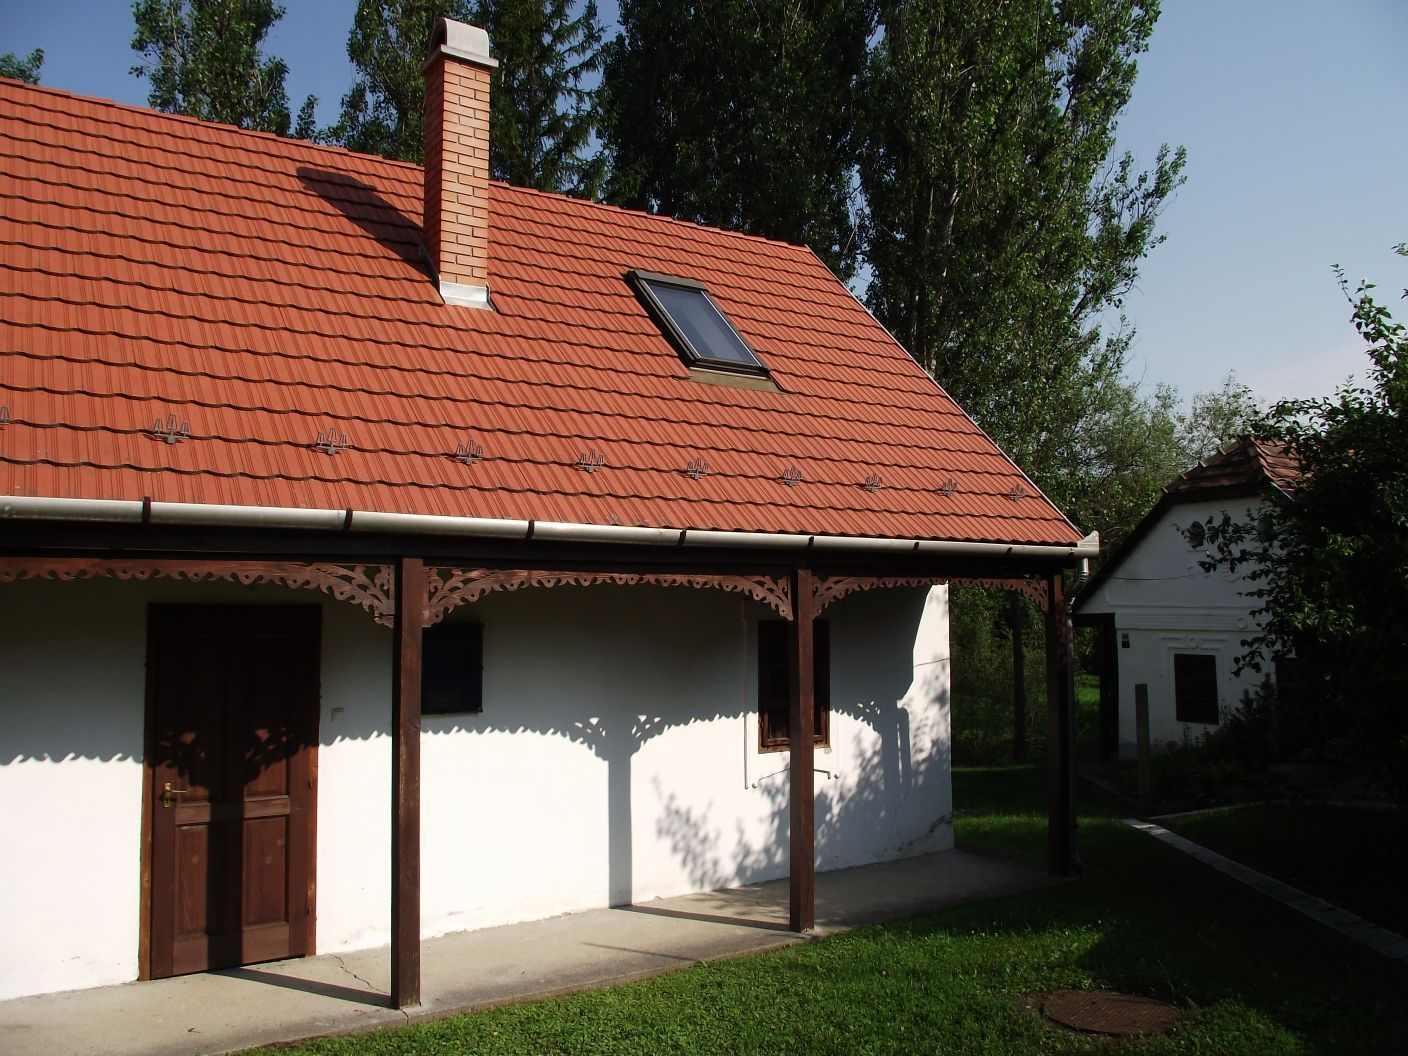 Pin By Gyorgy Laszlo On Love Hungary Cottage Homes Cottage Heart Of Europe